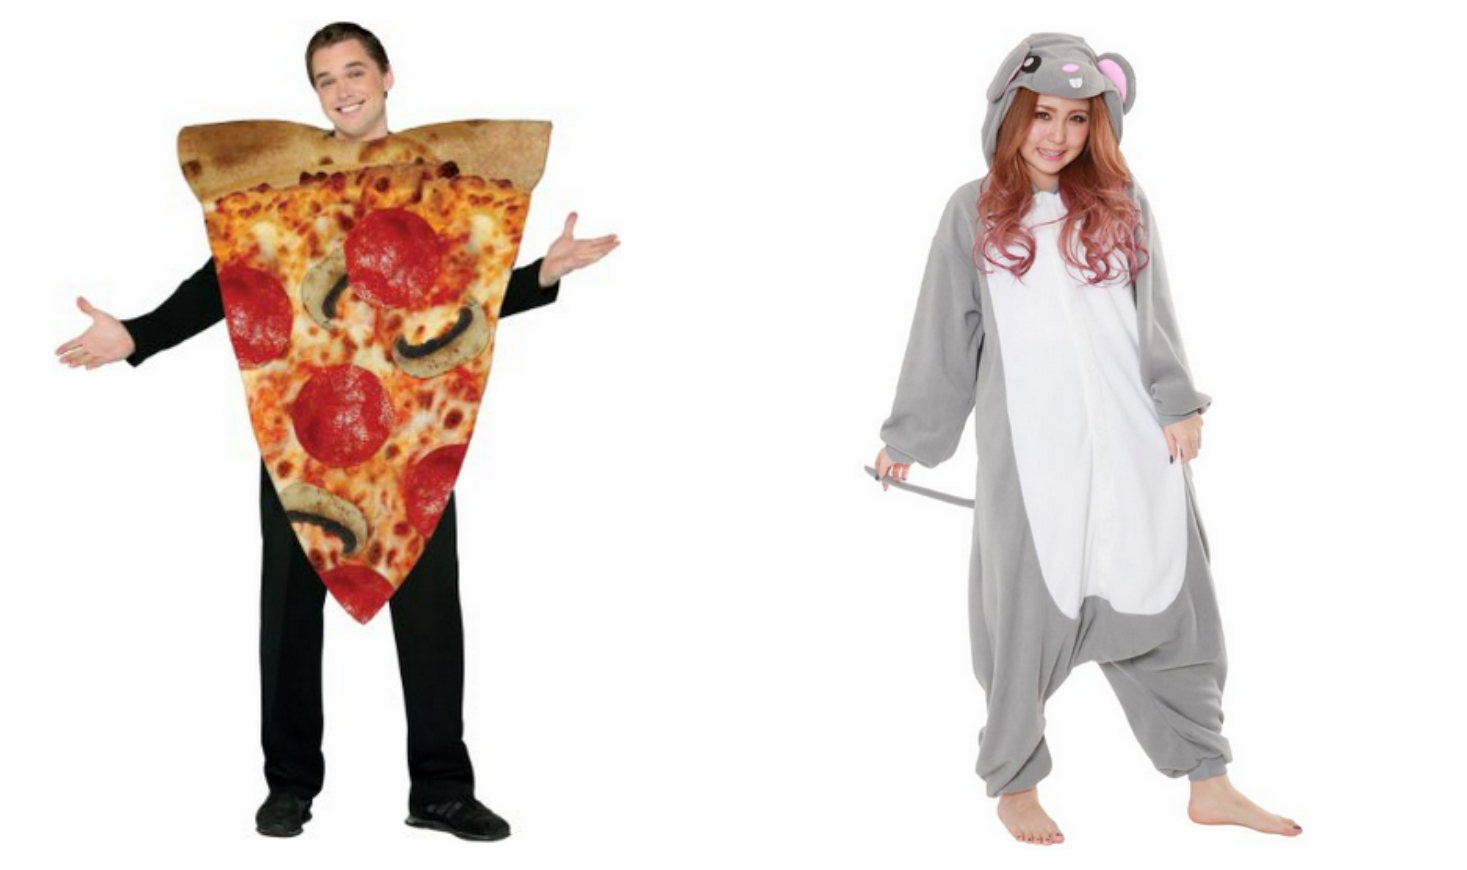 Pizza Rat Halloween Costume  sc 1 st  AOL.com & The 10 best Halloween costumes inspired by pop culture - AOL Lifestyle